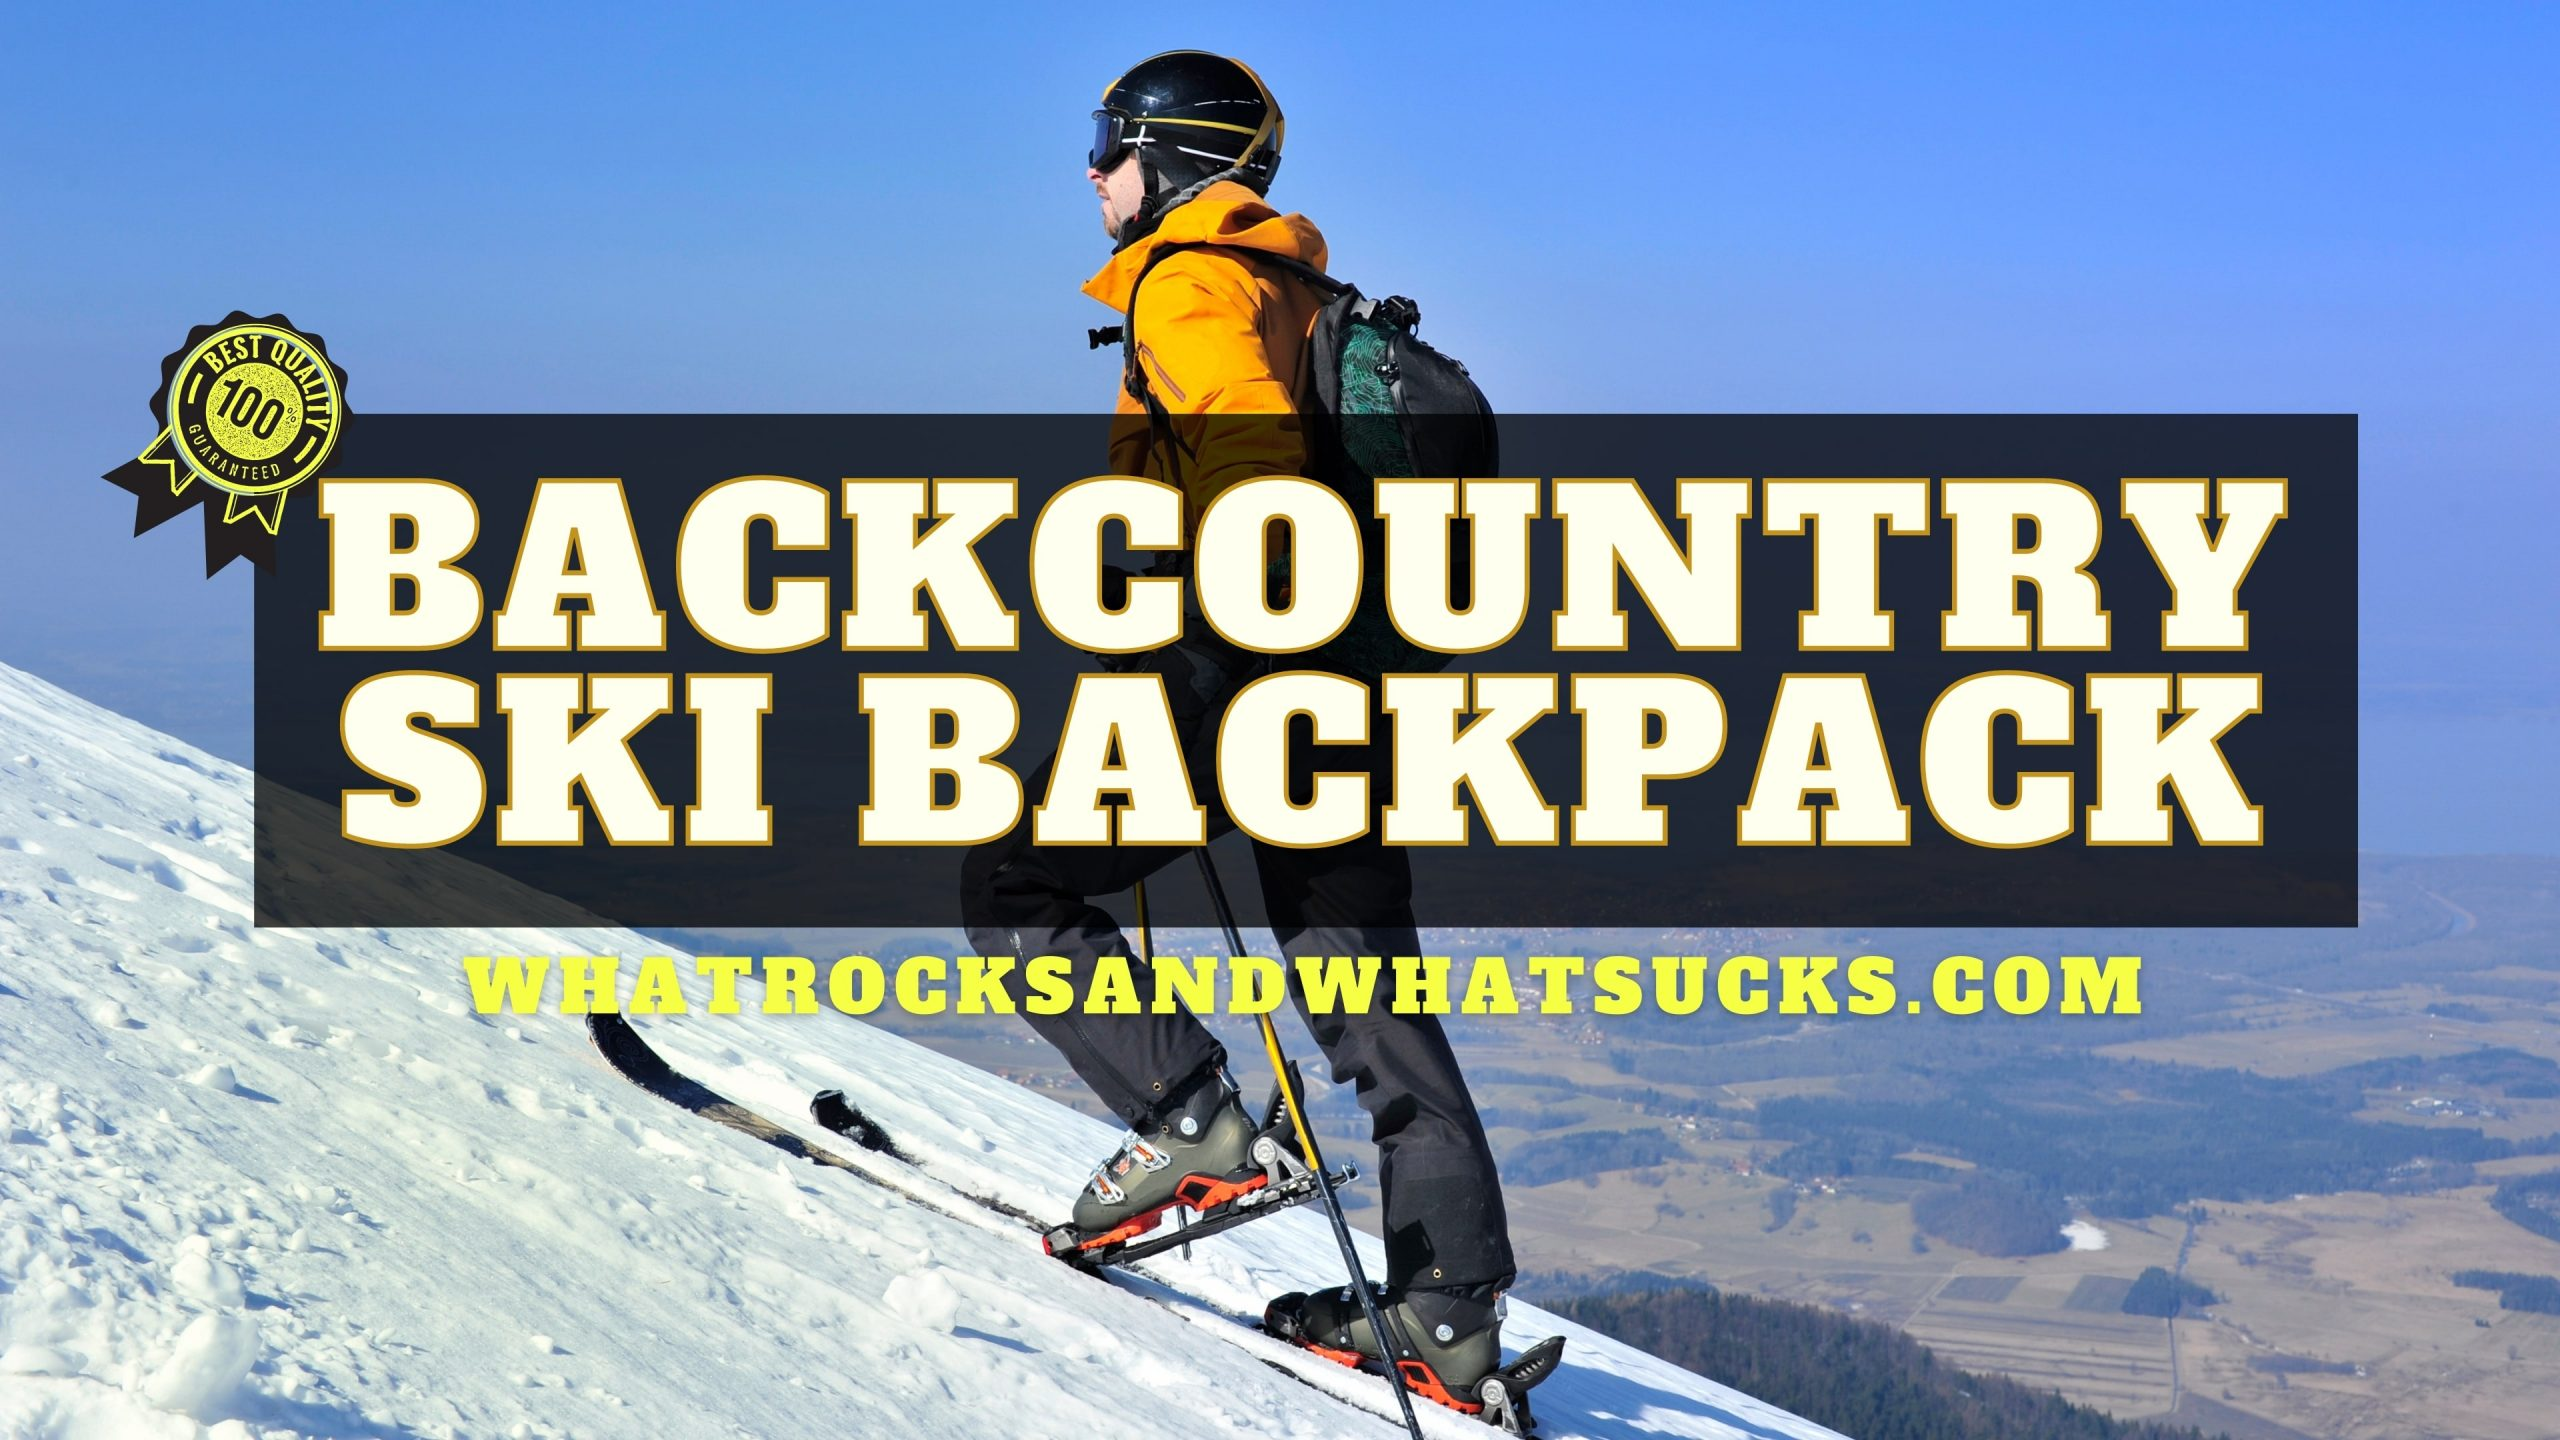 THE BEST BACKCOUNTRY SKI BACKPACK